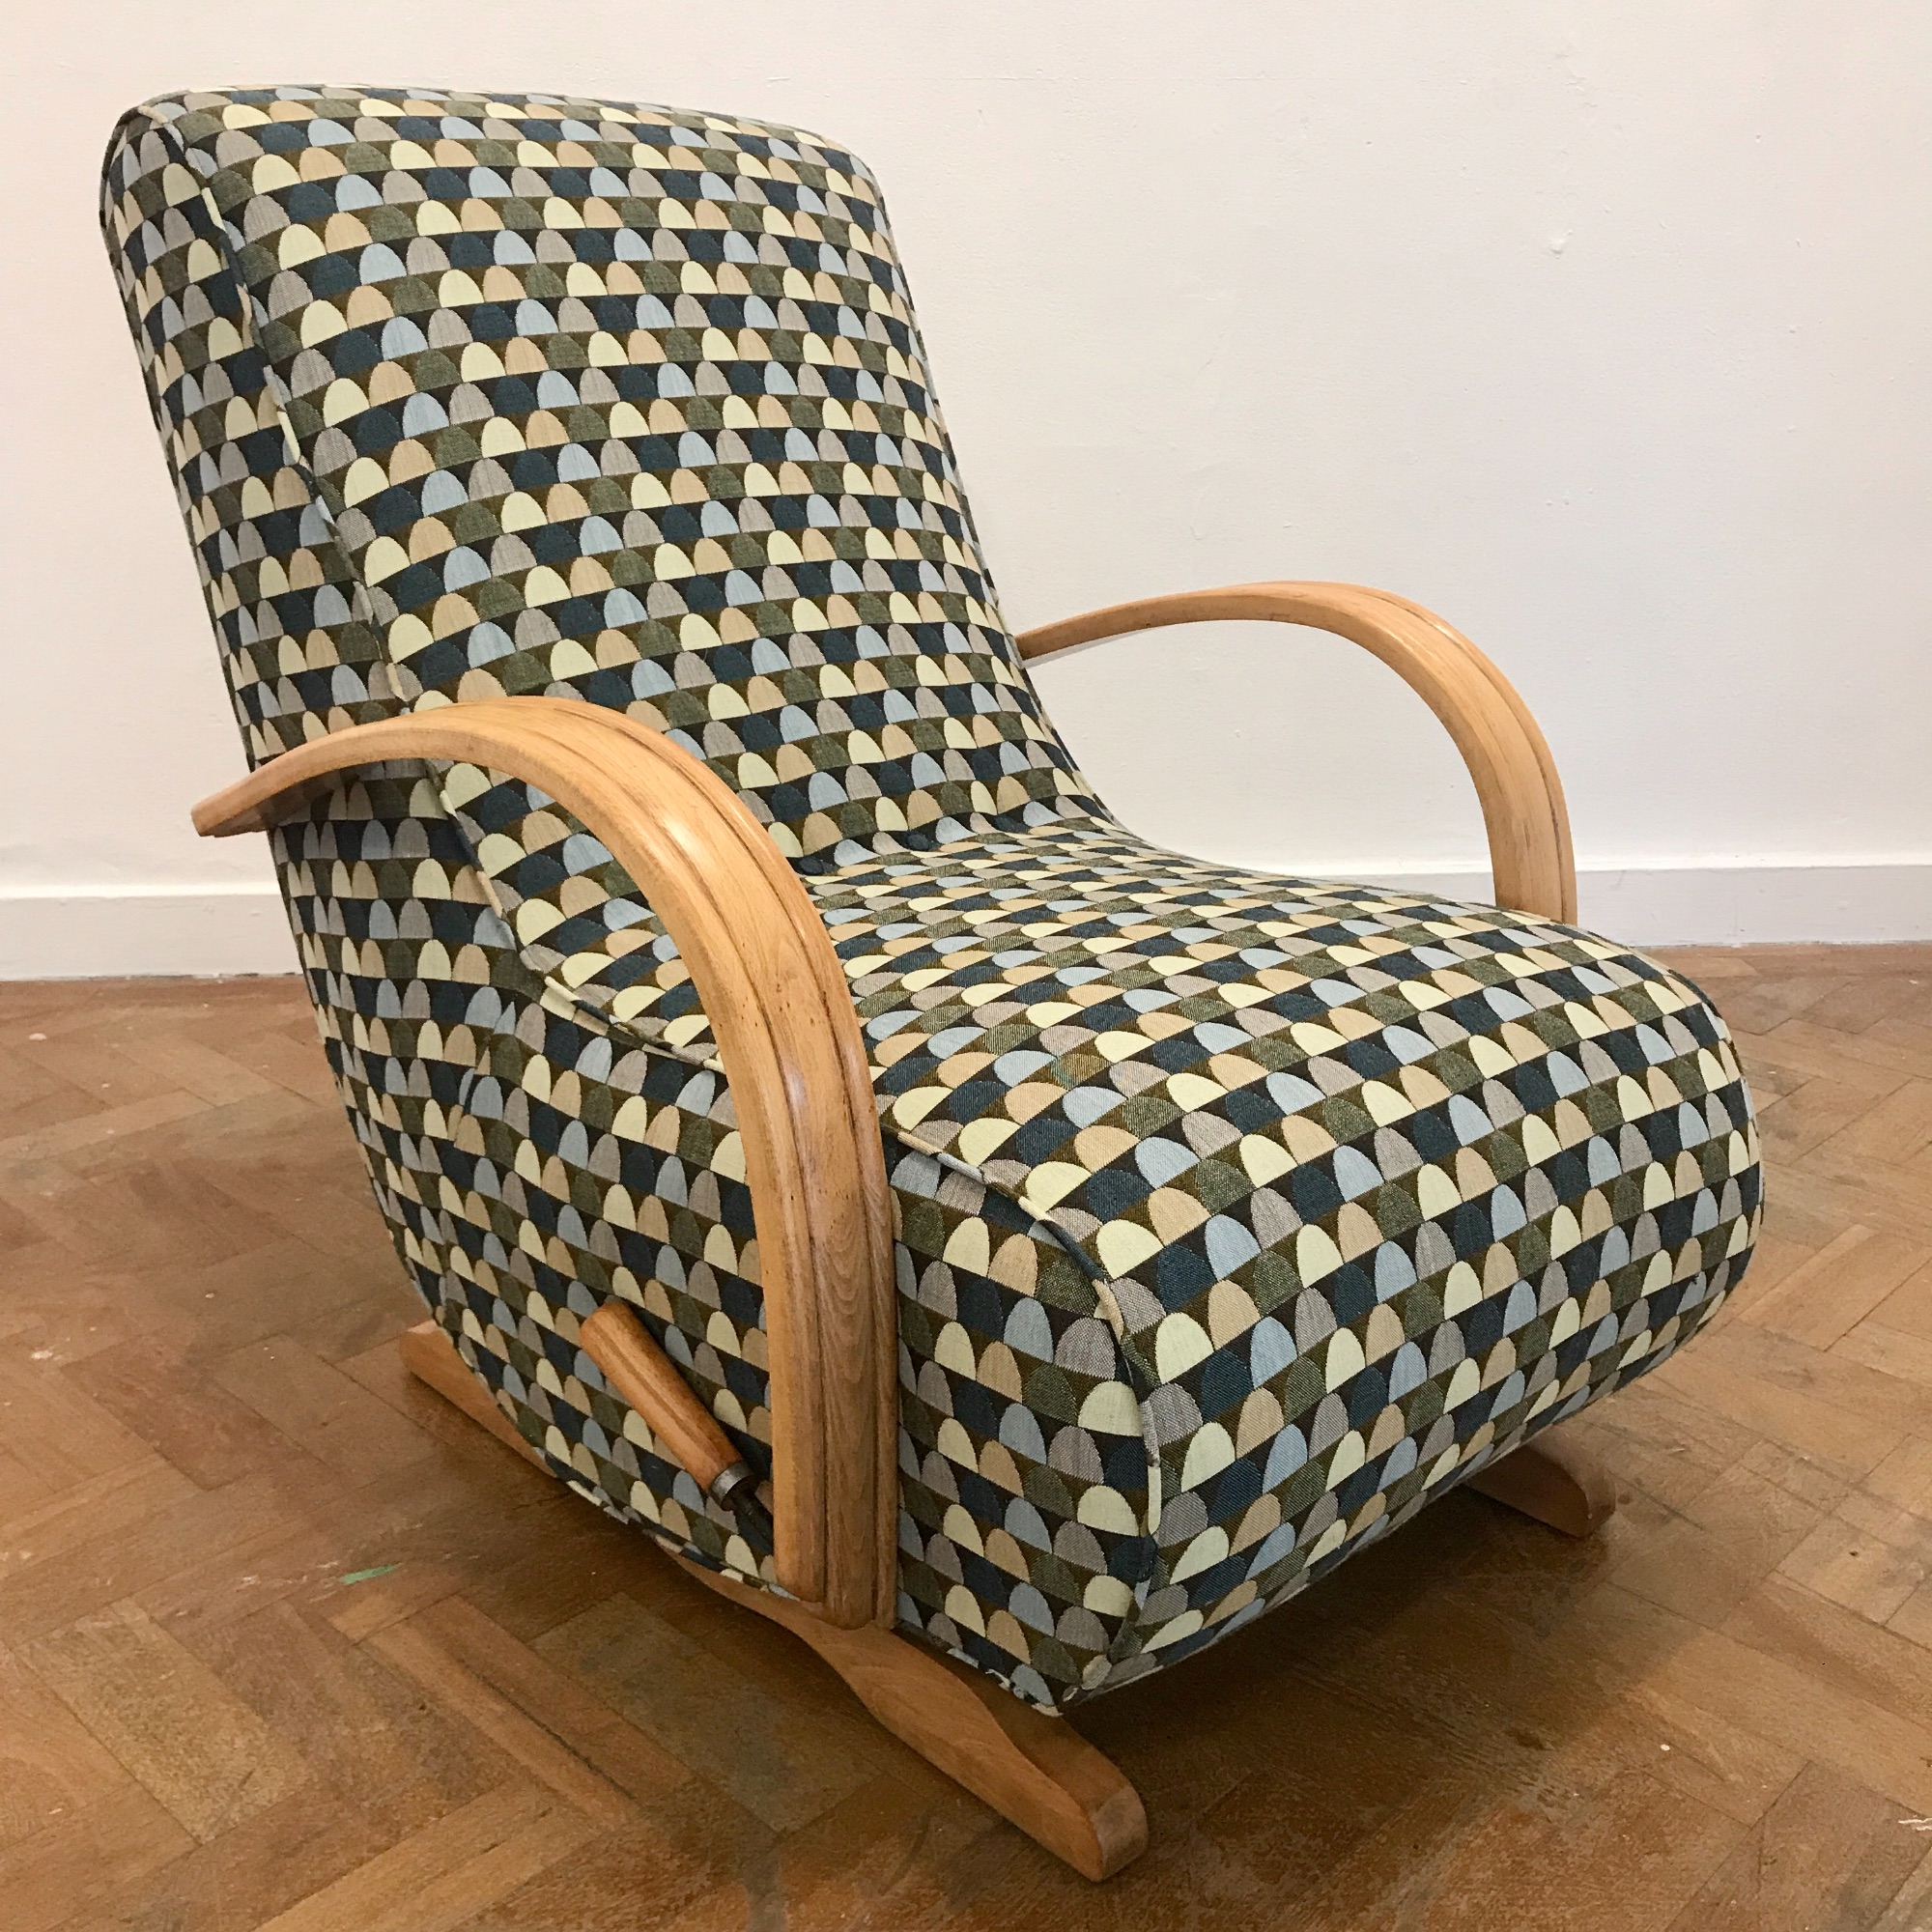 1940's Utility rocking chair  with bentwood arms & handbrake by  Spring Upholstery Brighton